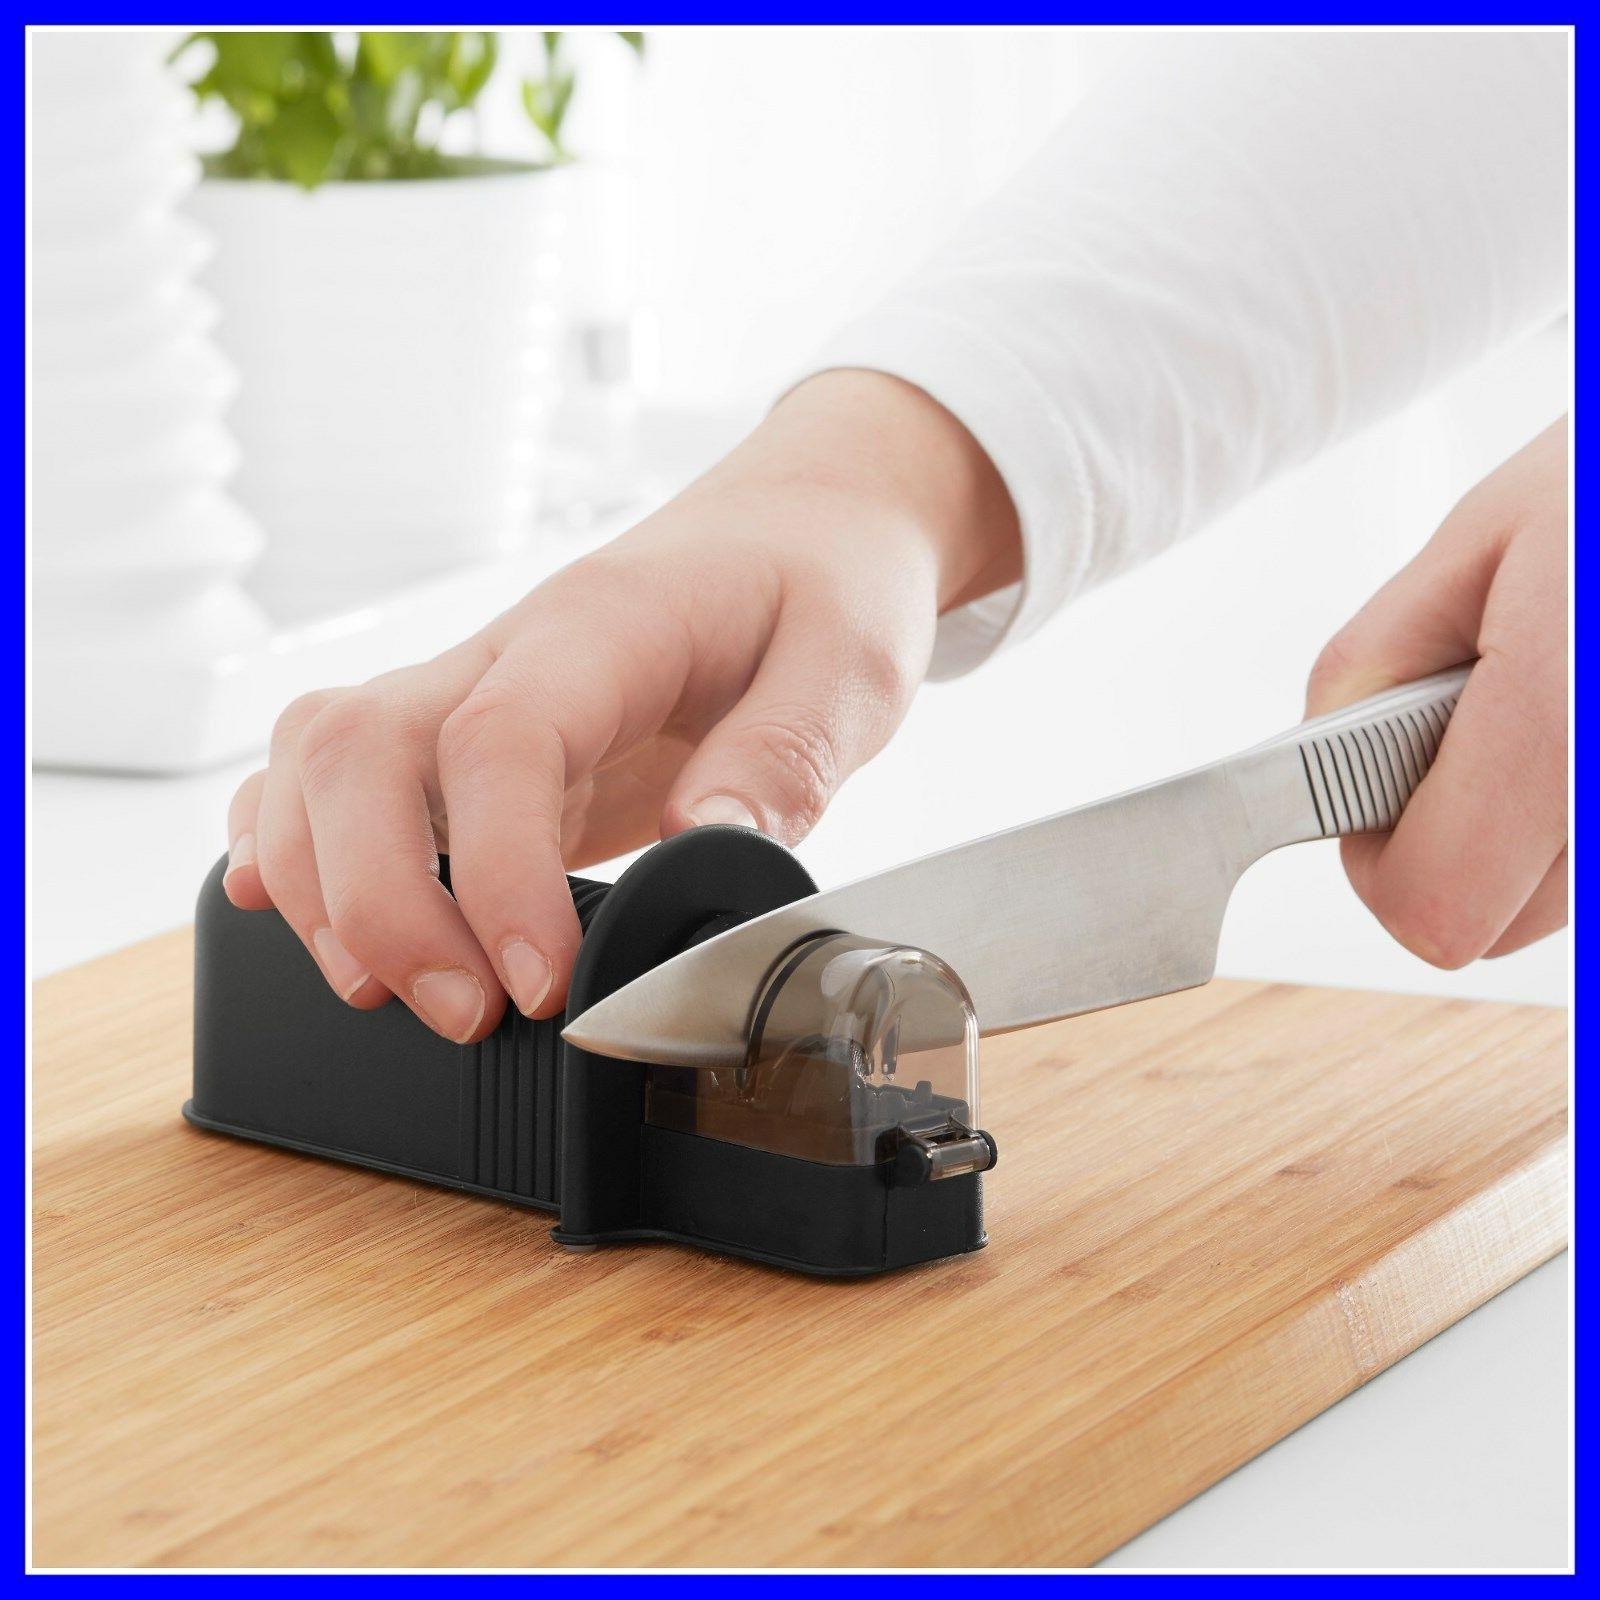 NEW 4pcs with Serrated Stainless Steel Knife Sharpener